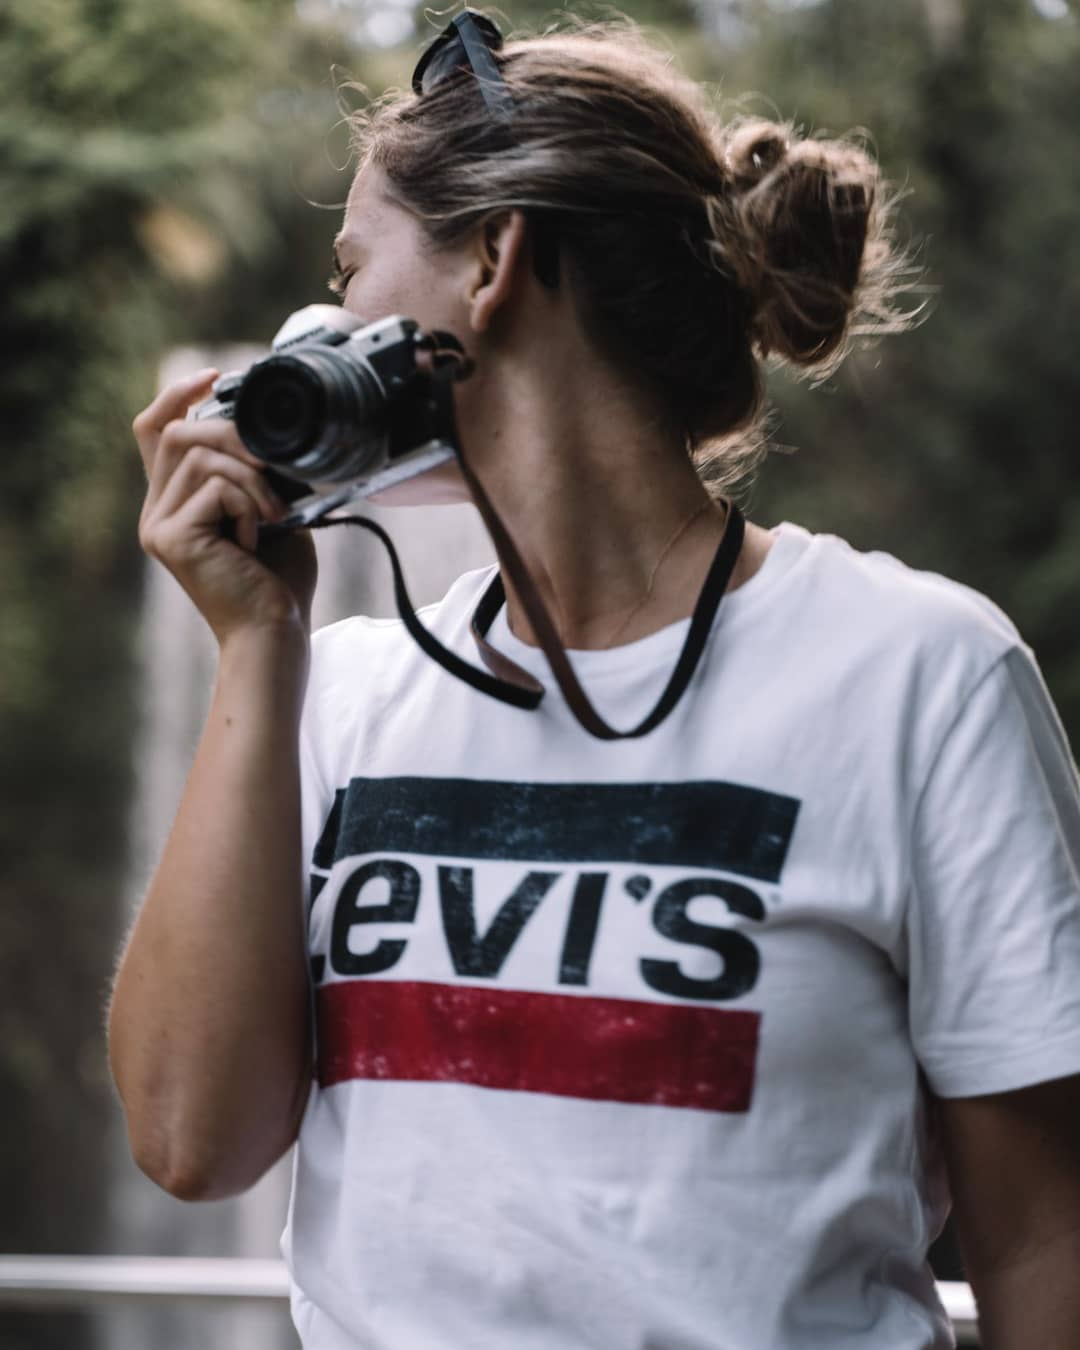 white girls levis t-shirt de Les Bourgeoises sur beatarasiuk